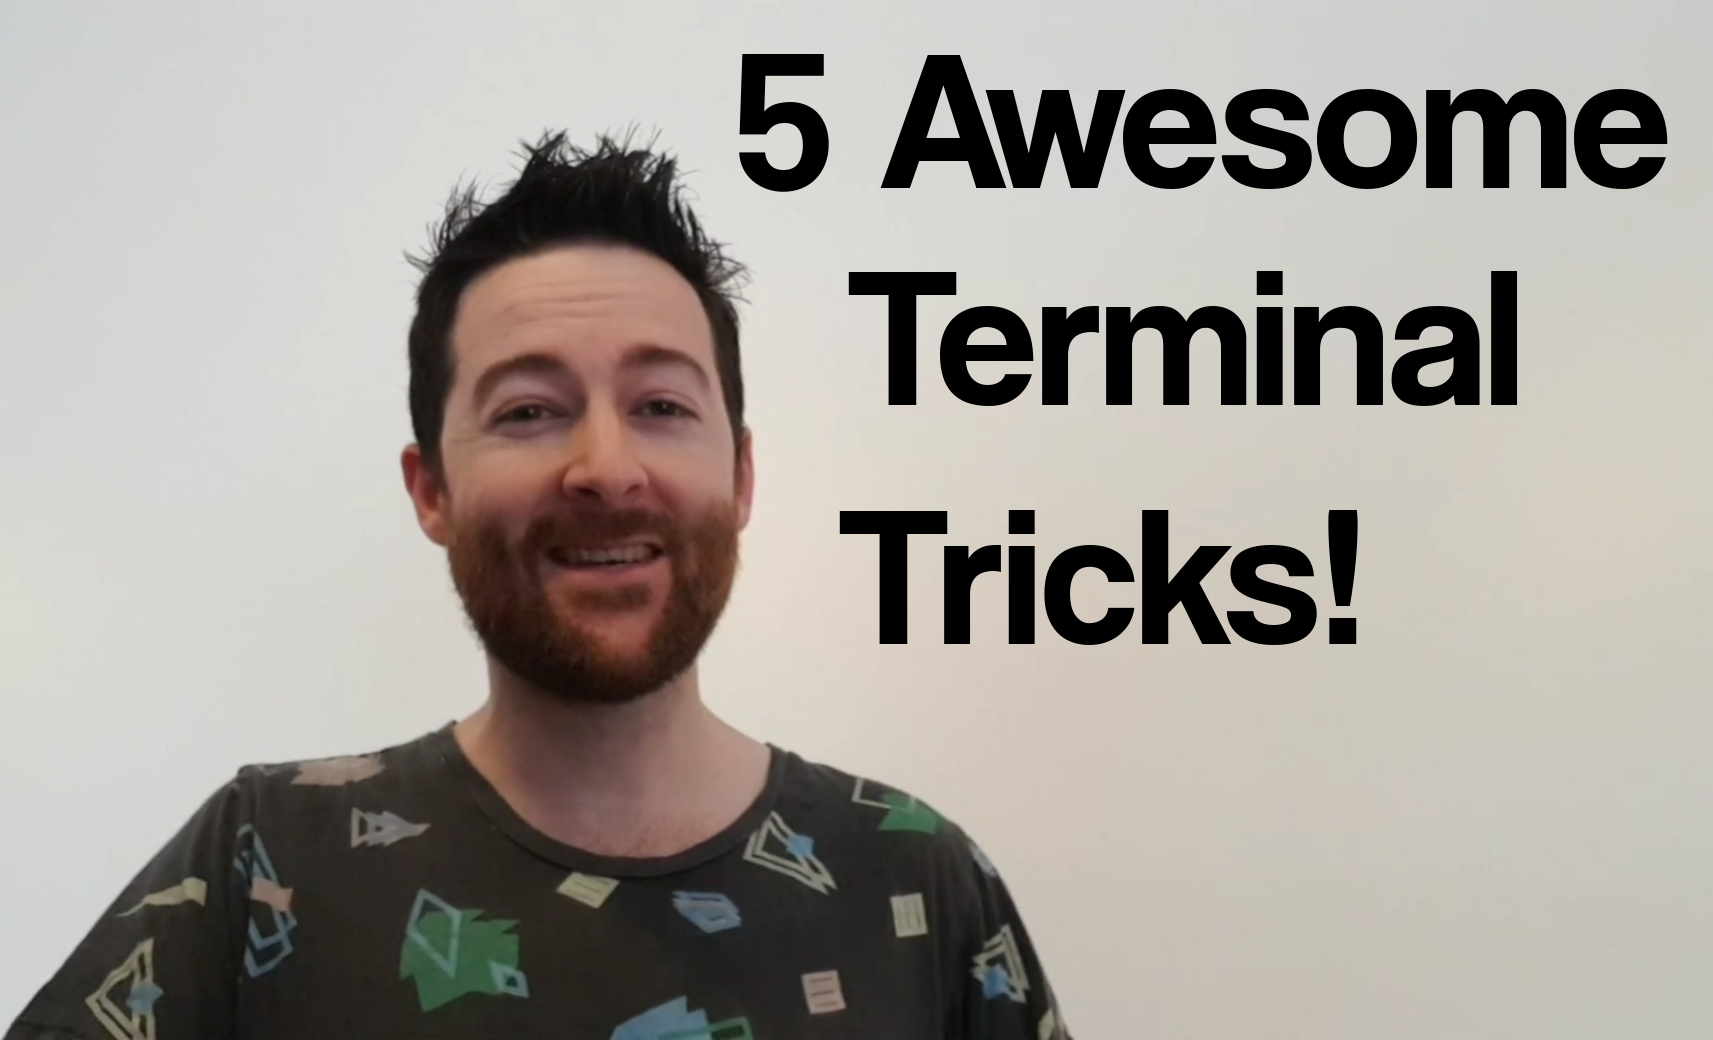 5 Awesome Terminal Tricks to Help You Level Up as a Developer